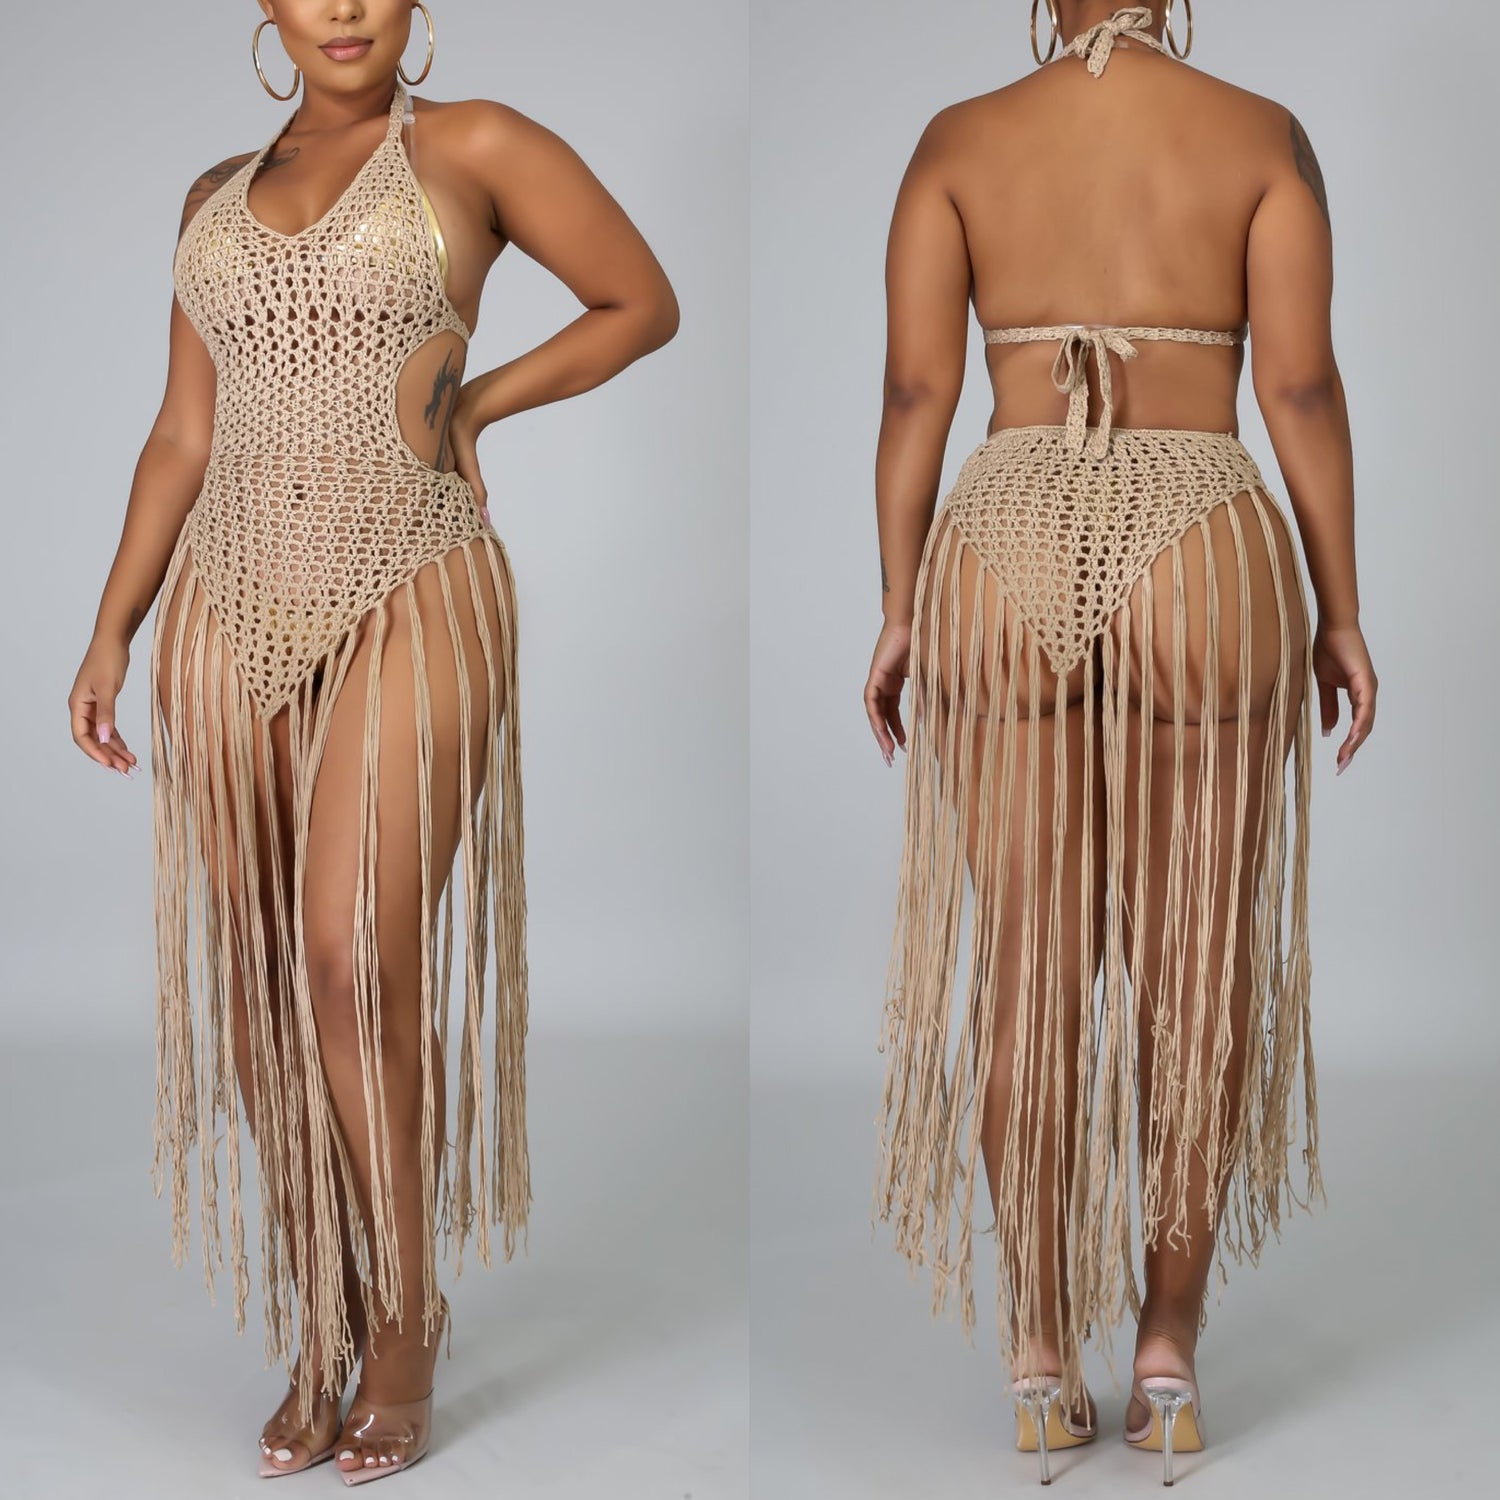 Image of Fringe Beach Cover Up